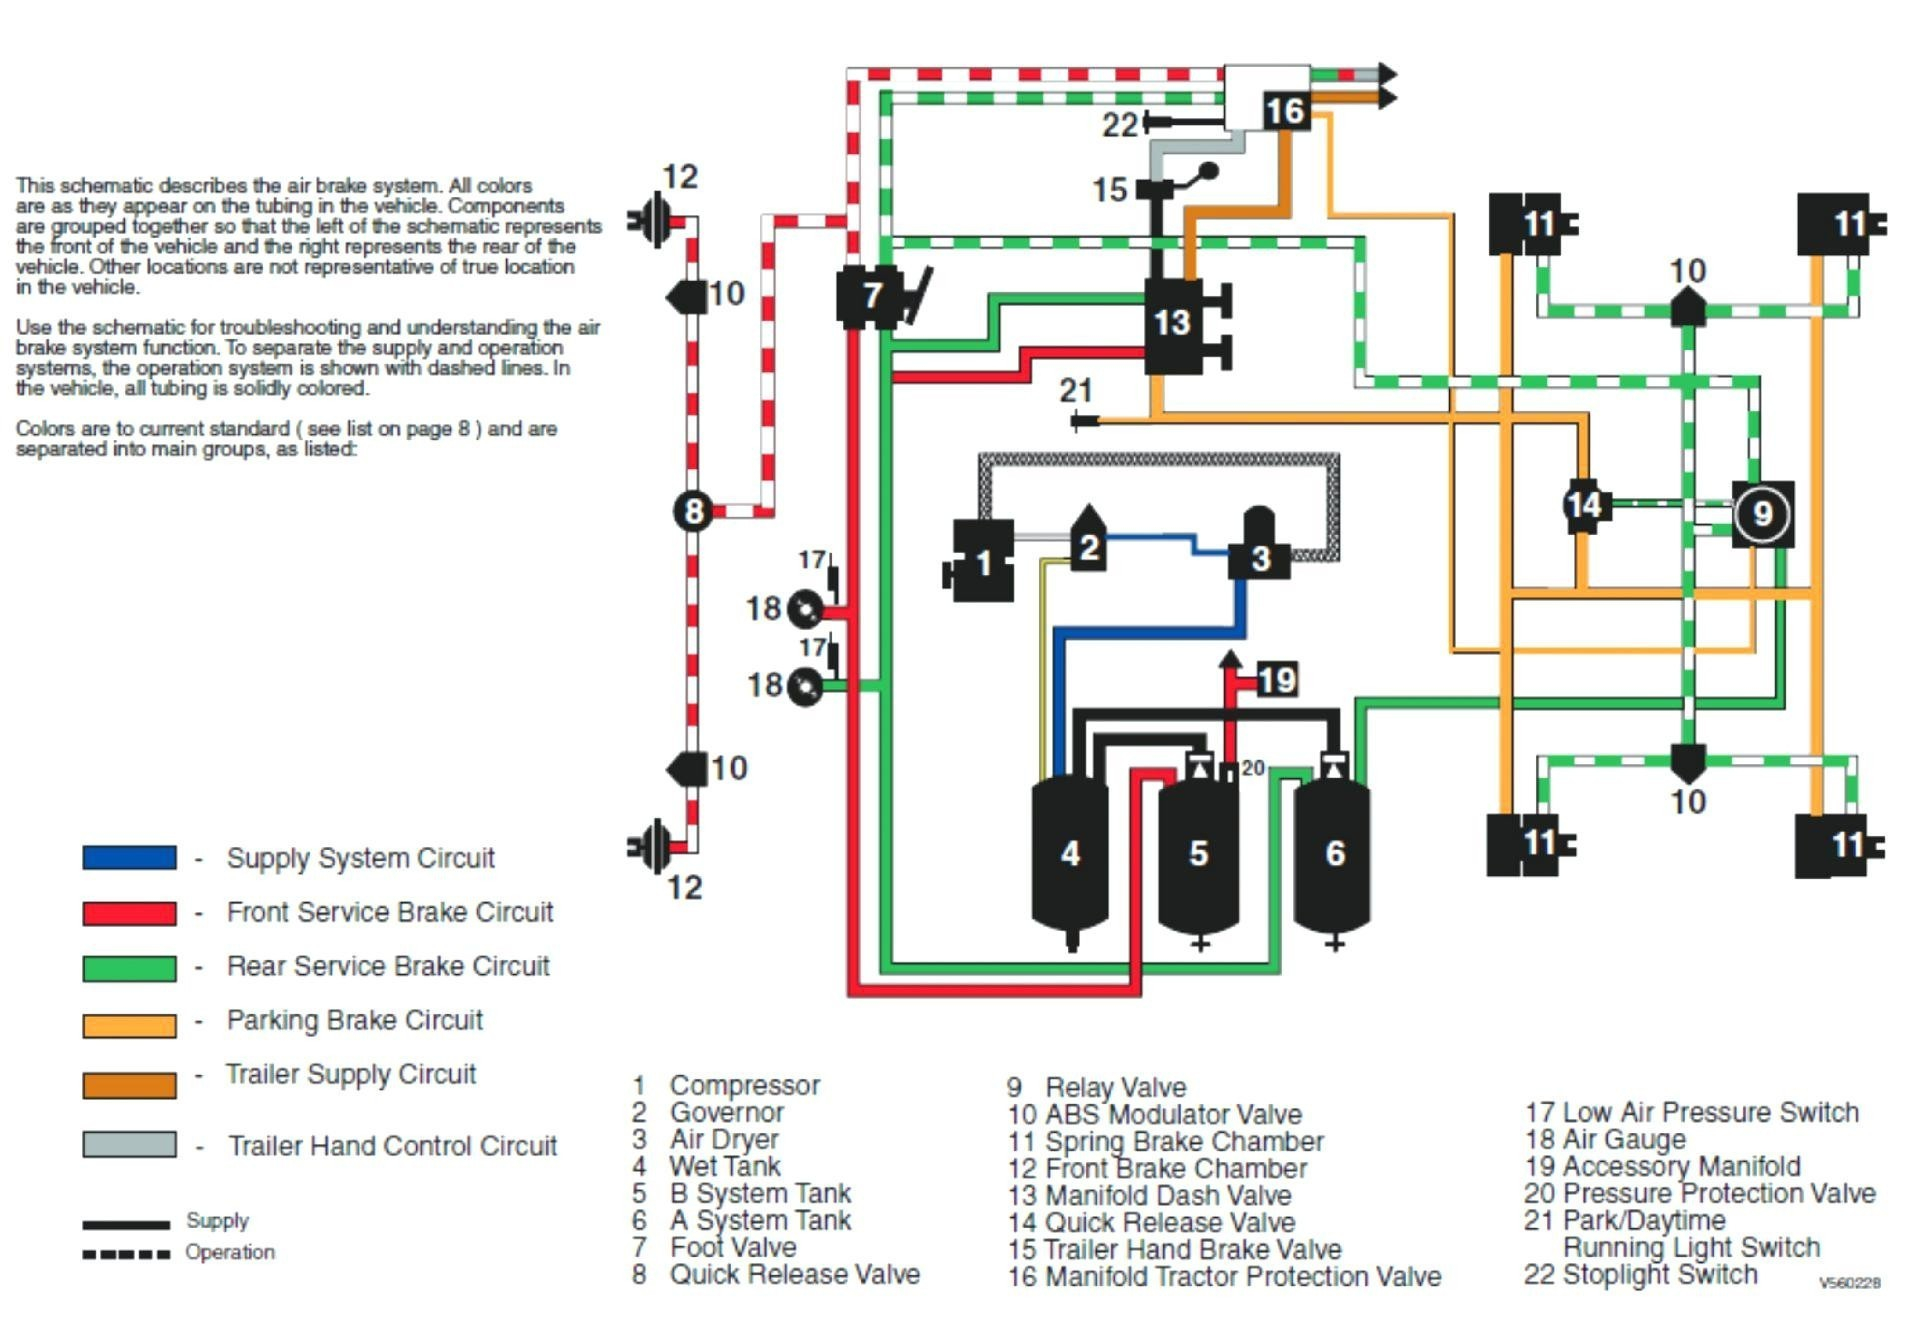 Wiring Diagram For Tandem Axle Trailer | Wiring Diagram - Wiring Diagram For Tandem Axle Trailer With Brakes